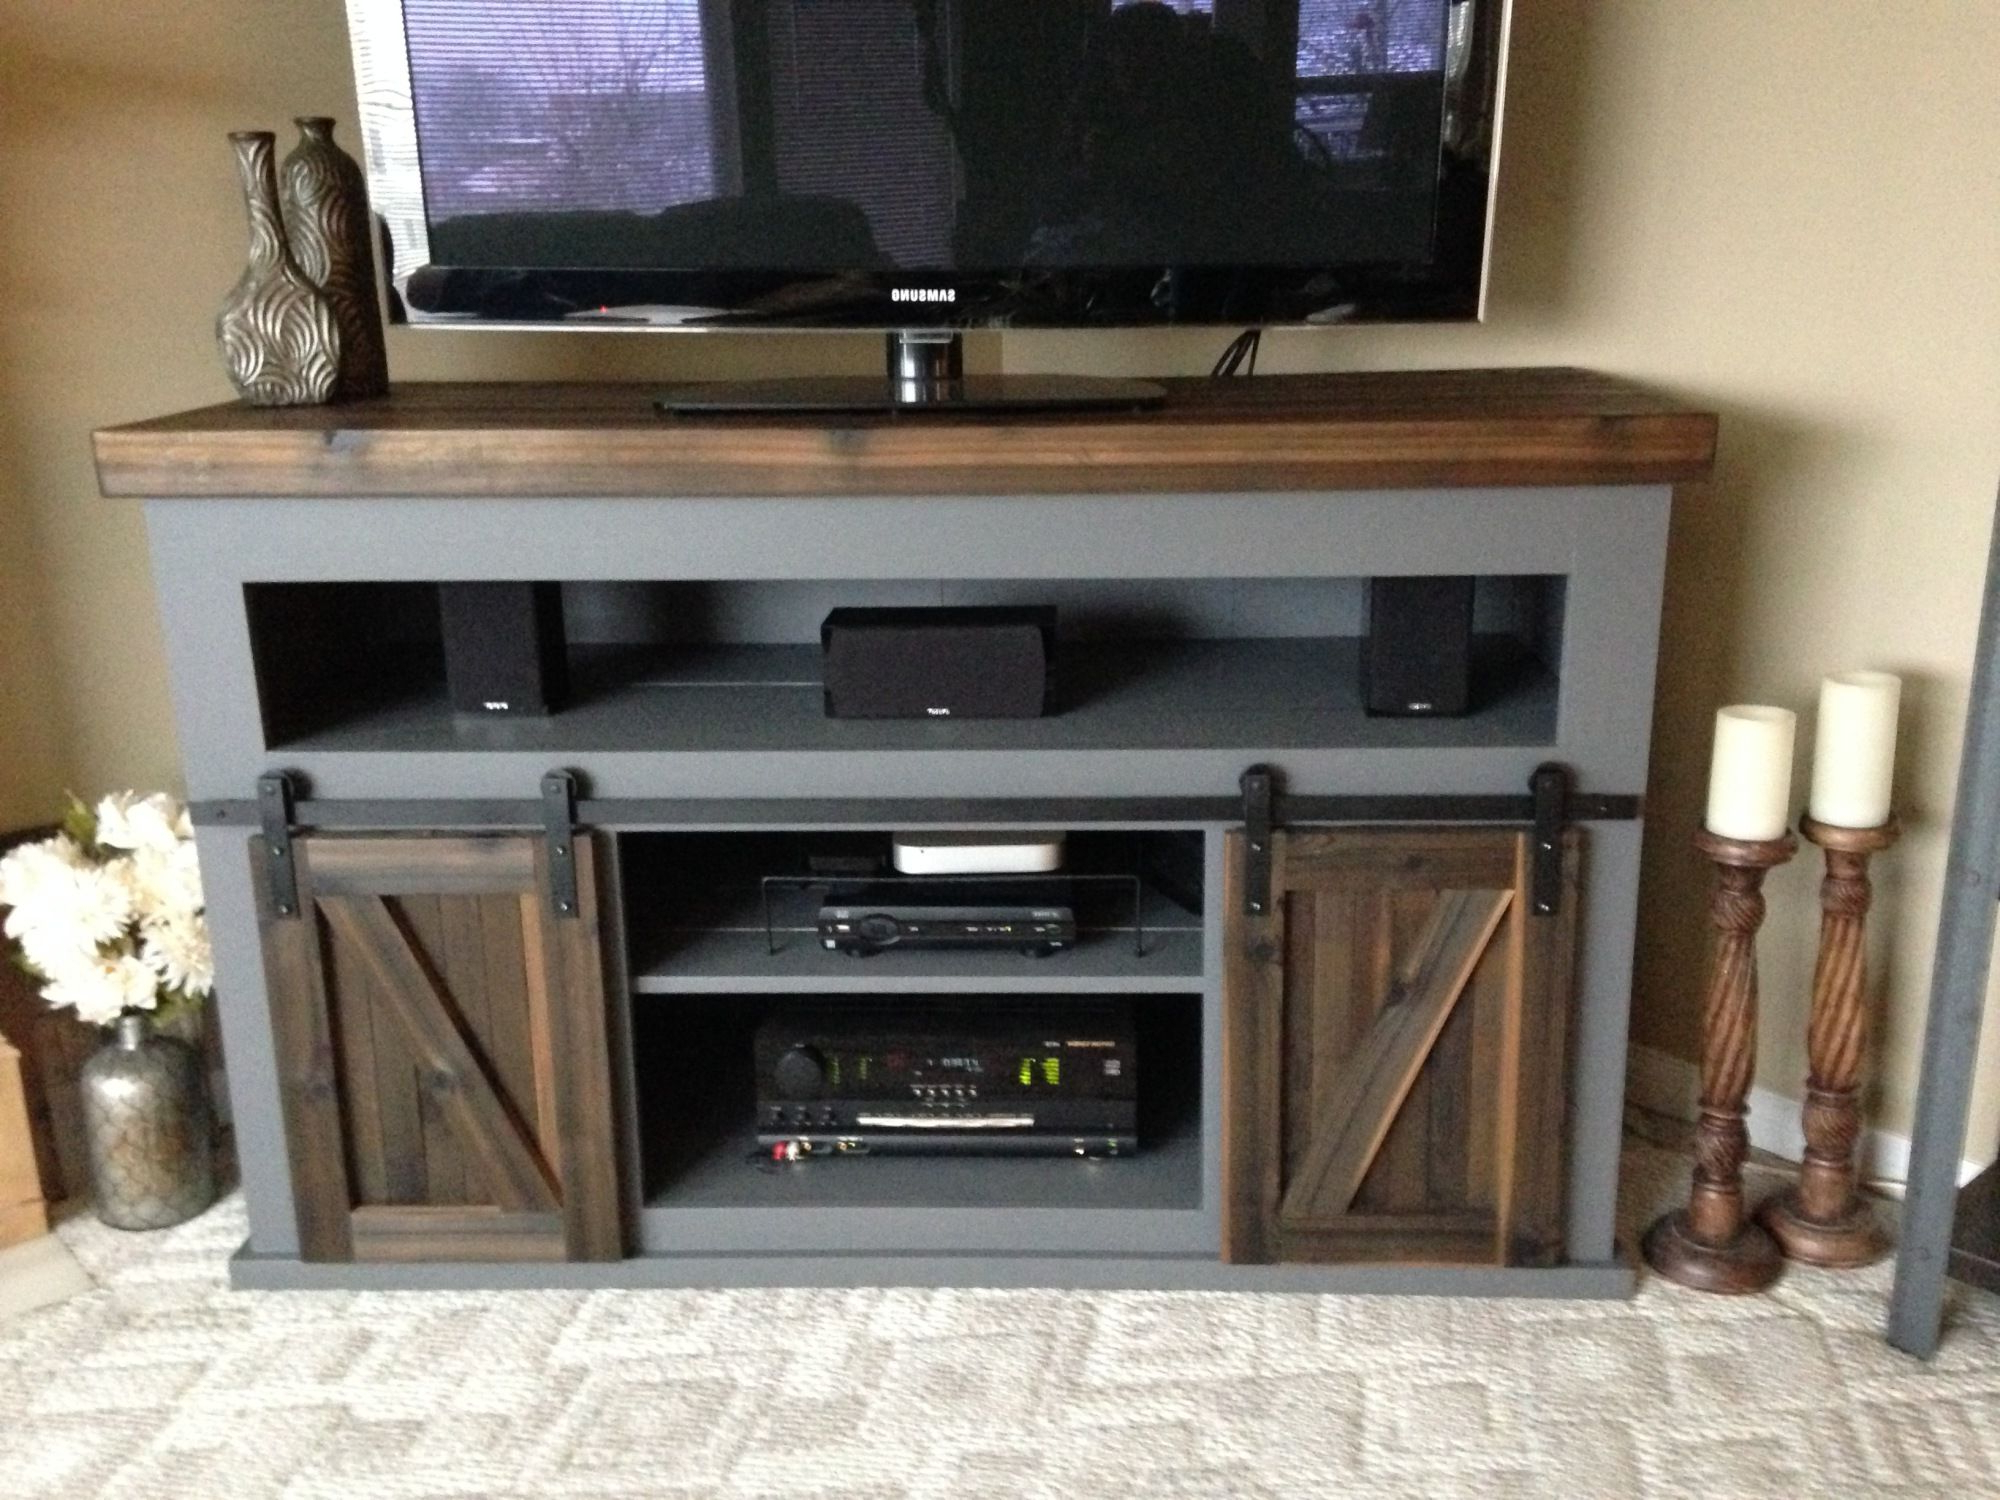 Flat Screen Tv Stands Corner Units Pertaining To 2018 Bedroom Black Flat Screen Tv Stand Corner Television Stands For Flat (View 9 of 20)